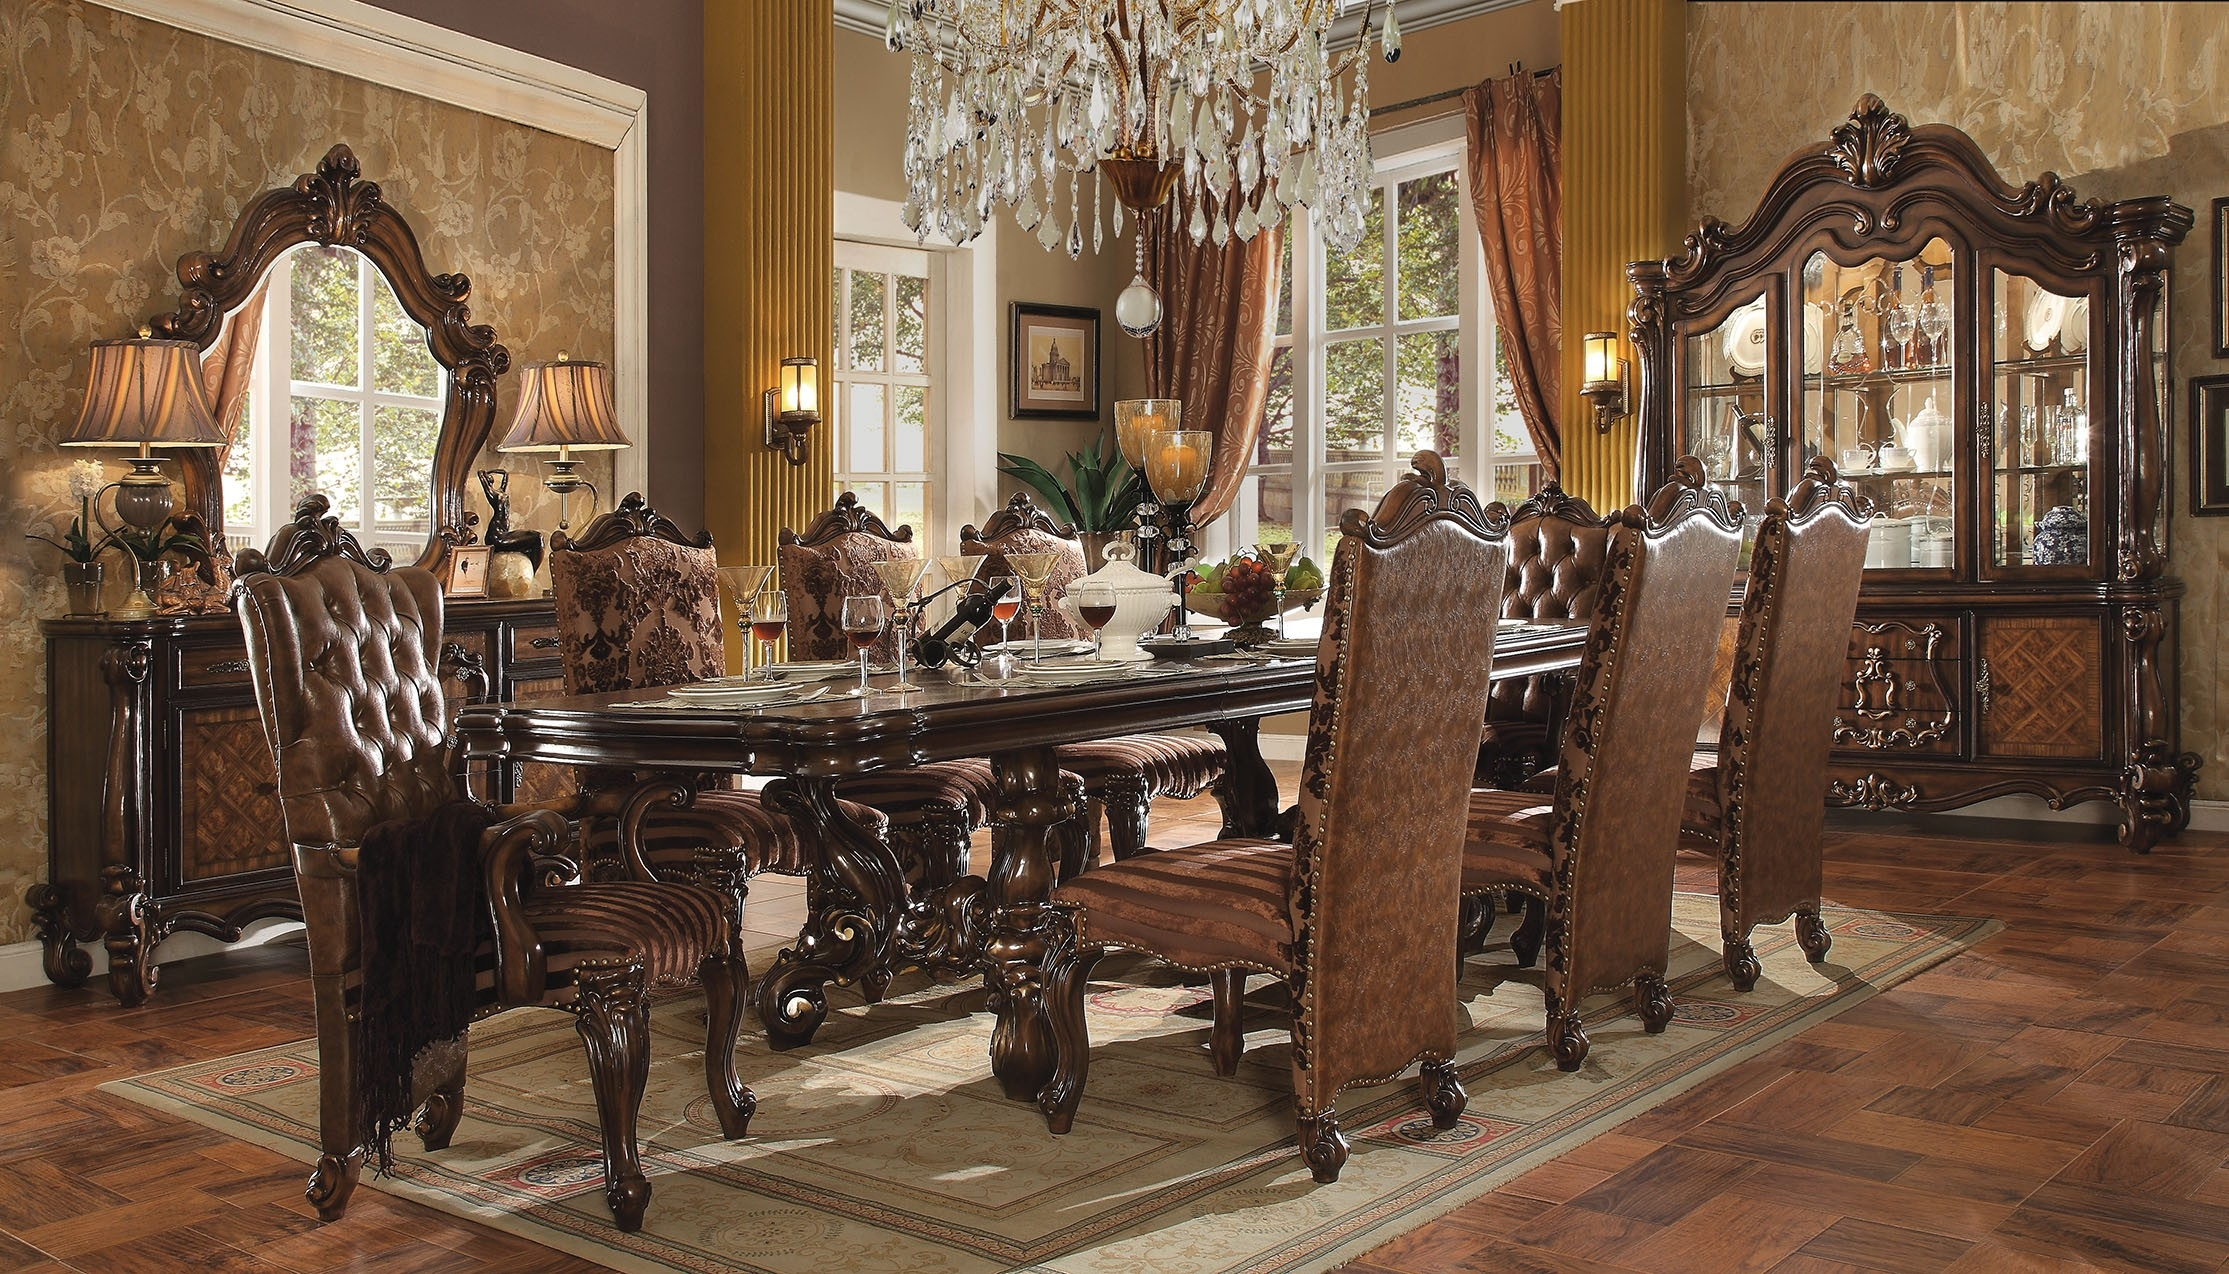 Exciting formal-dining-room-sets-with-buffet and ceiling light for dining room with modern formal dining room sets